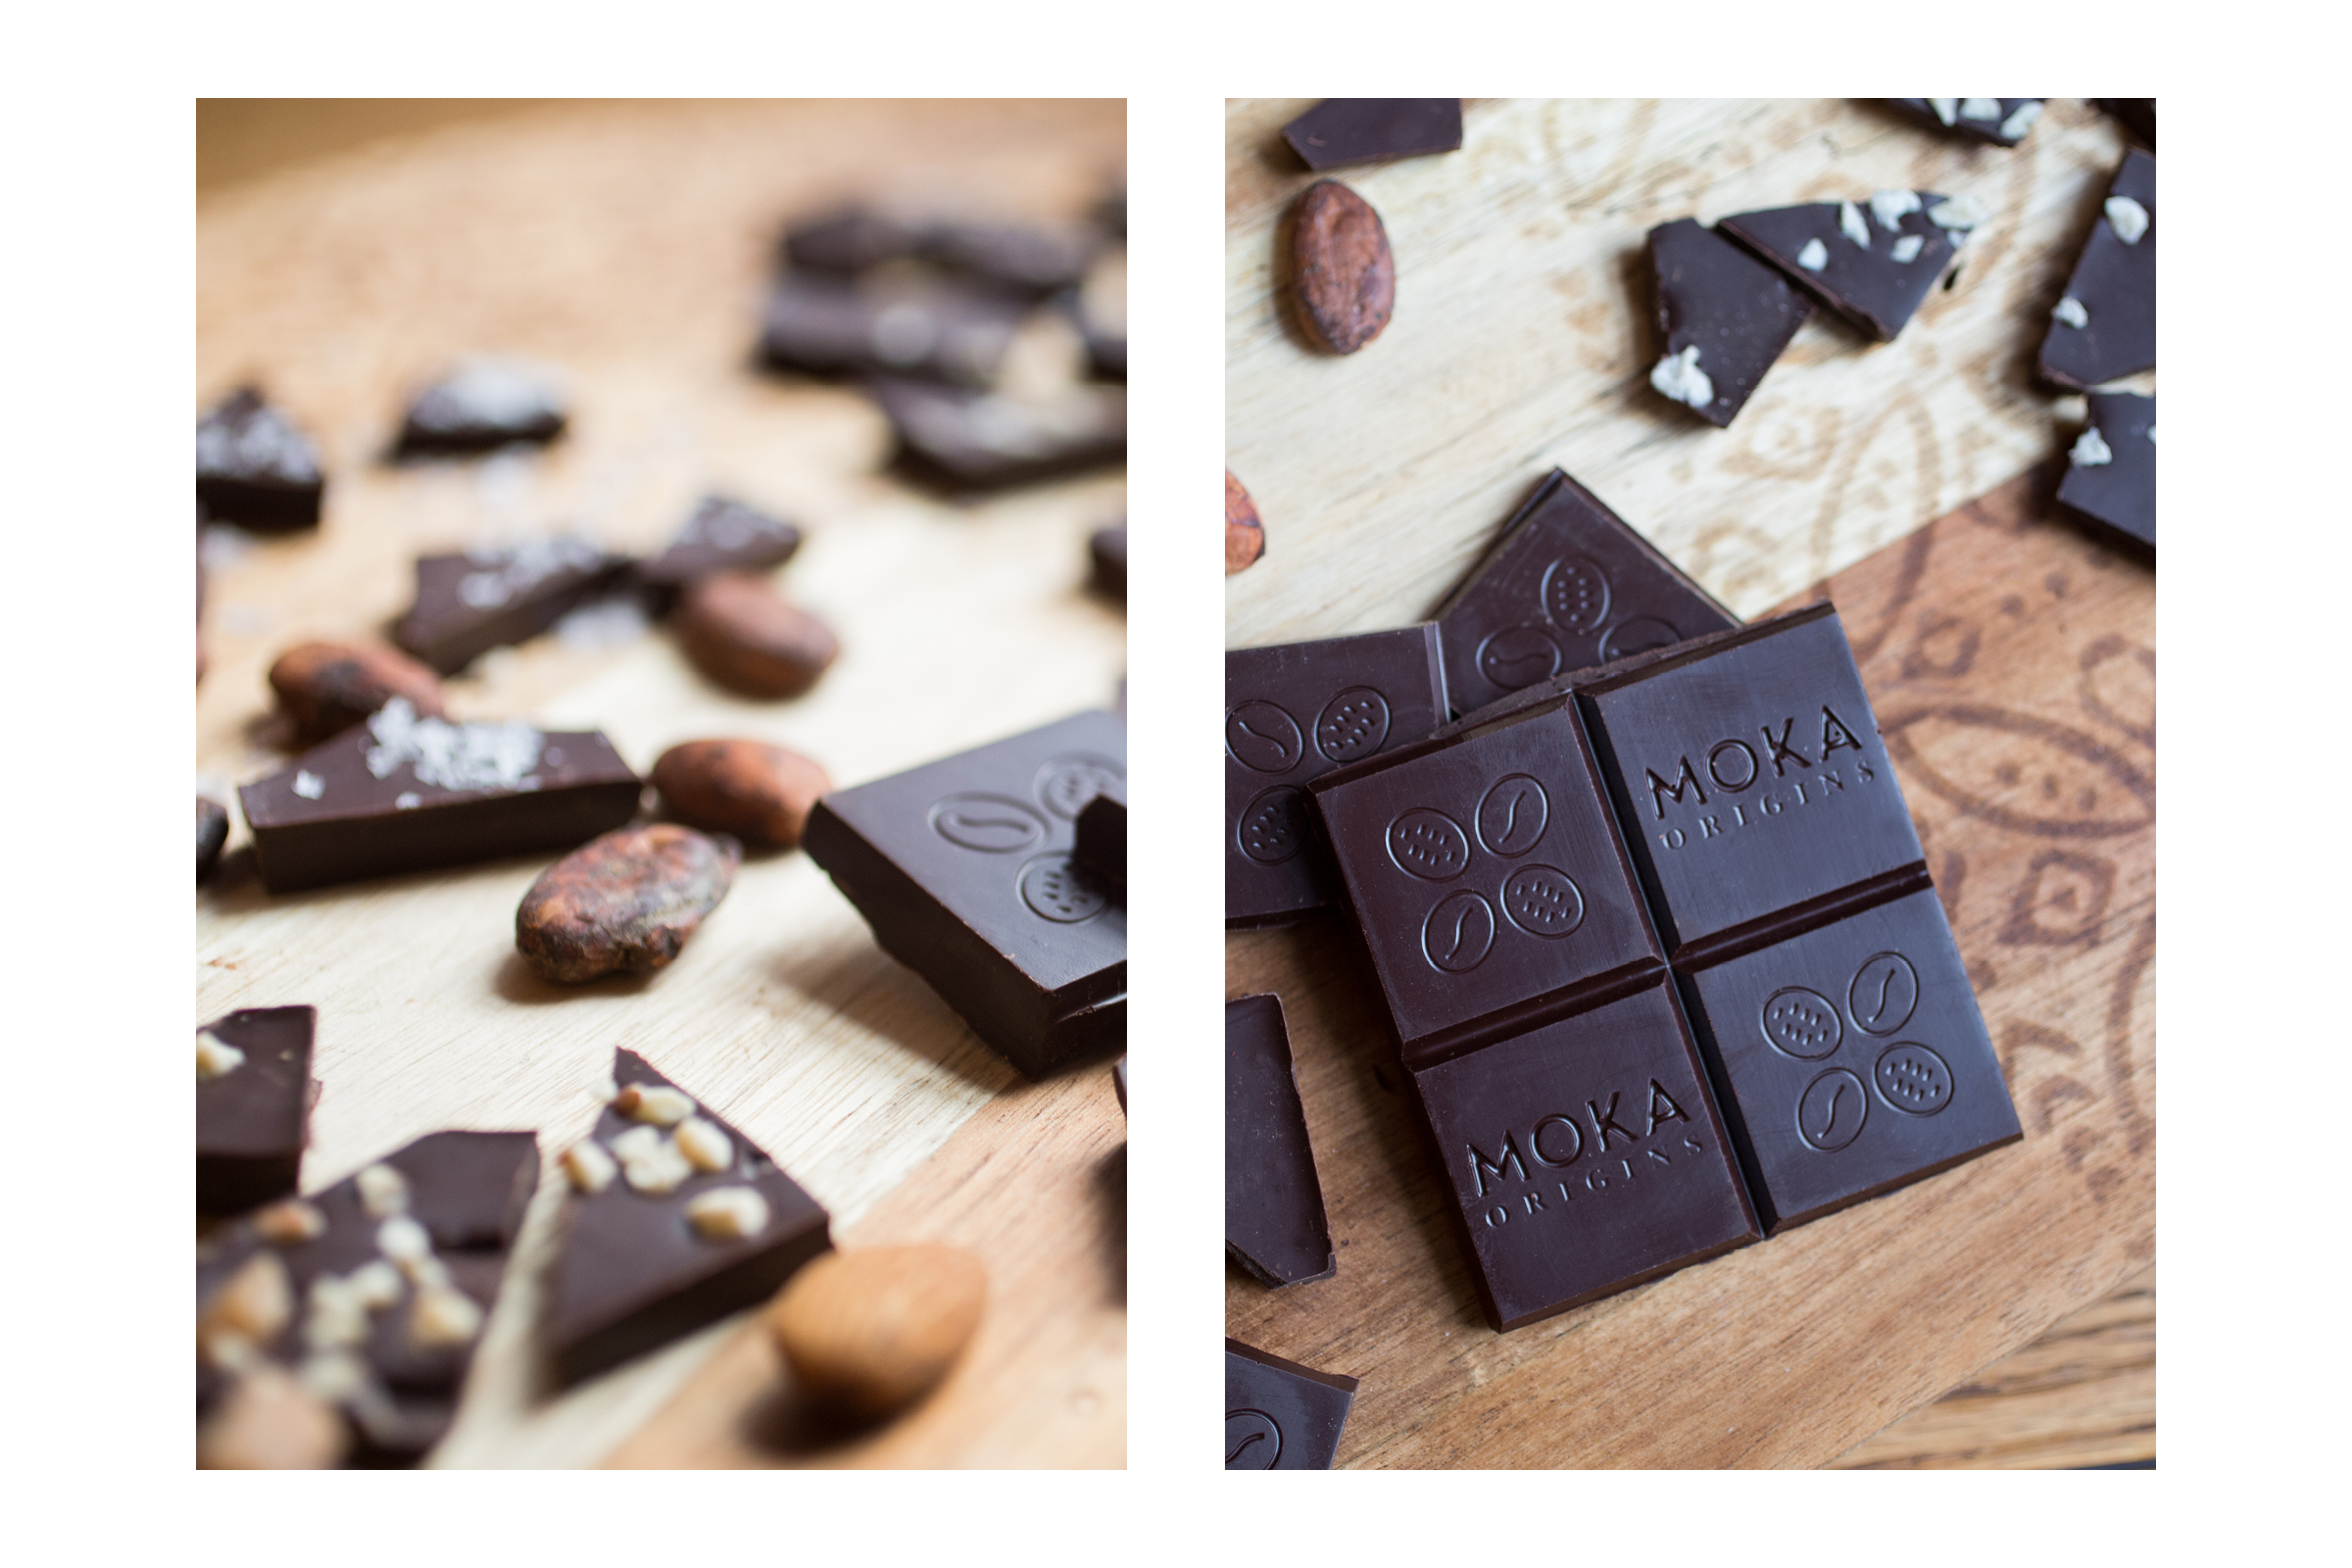 Moka Origins Chocolate Branding